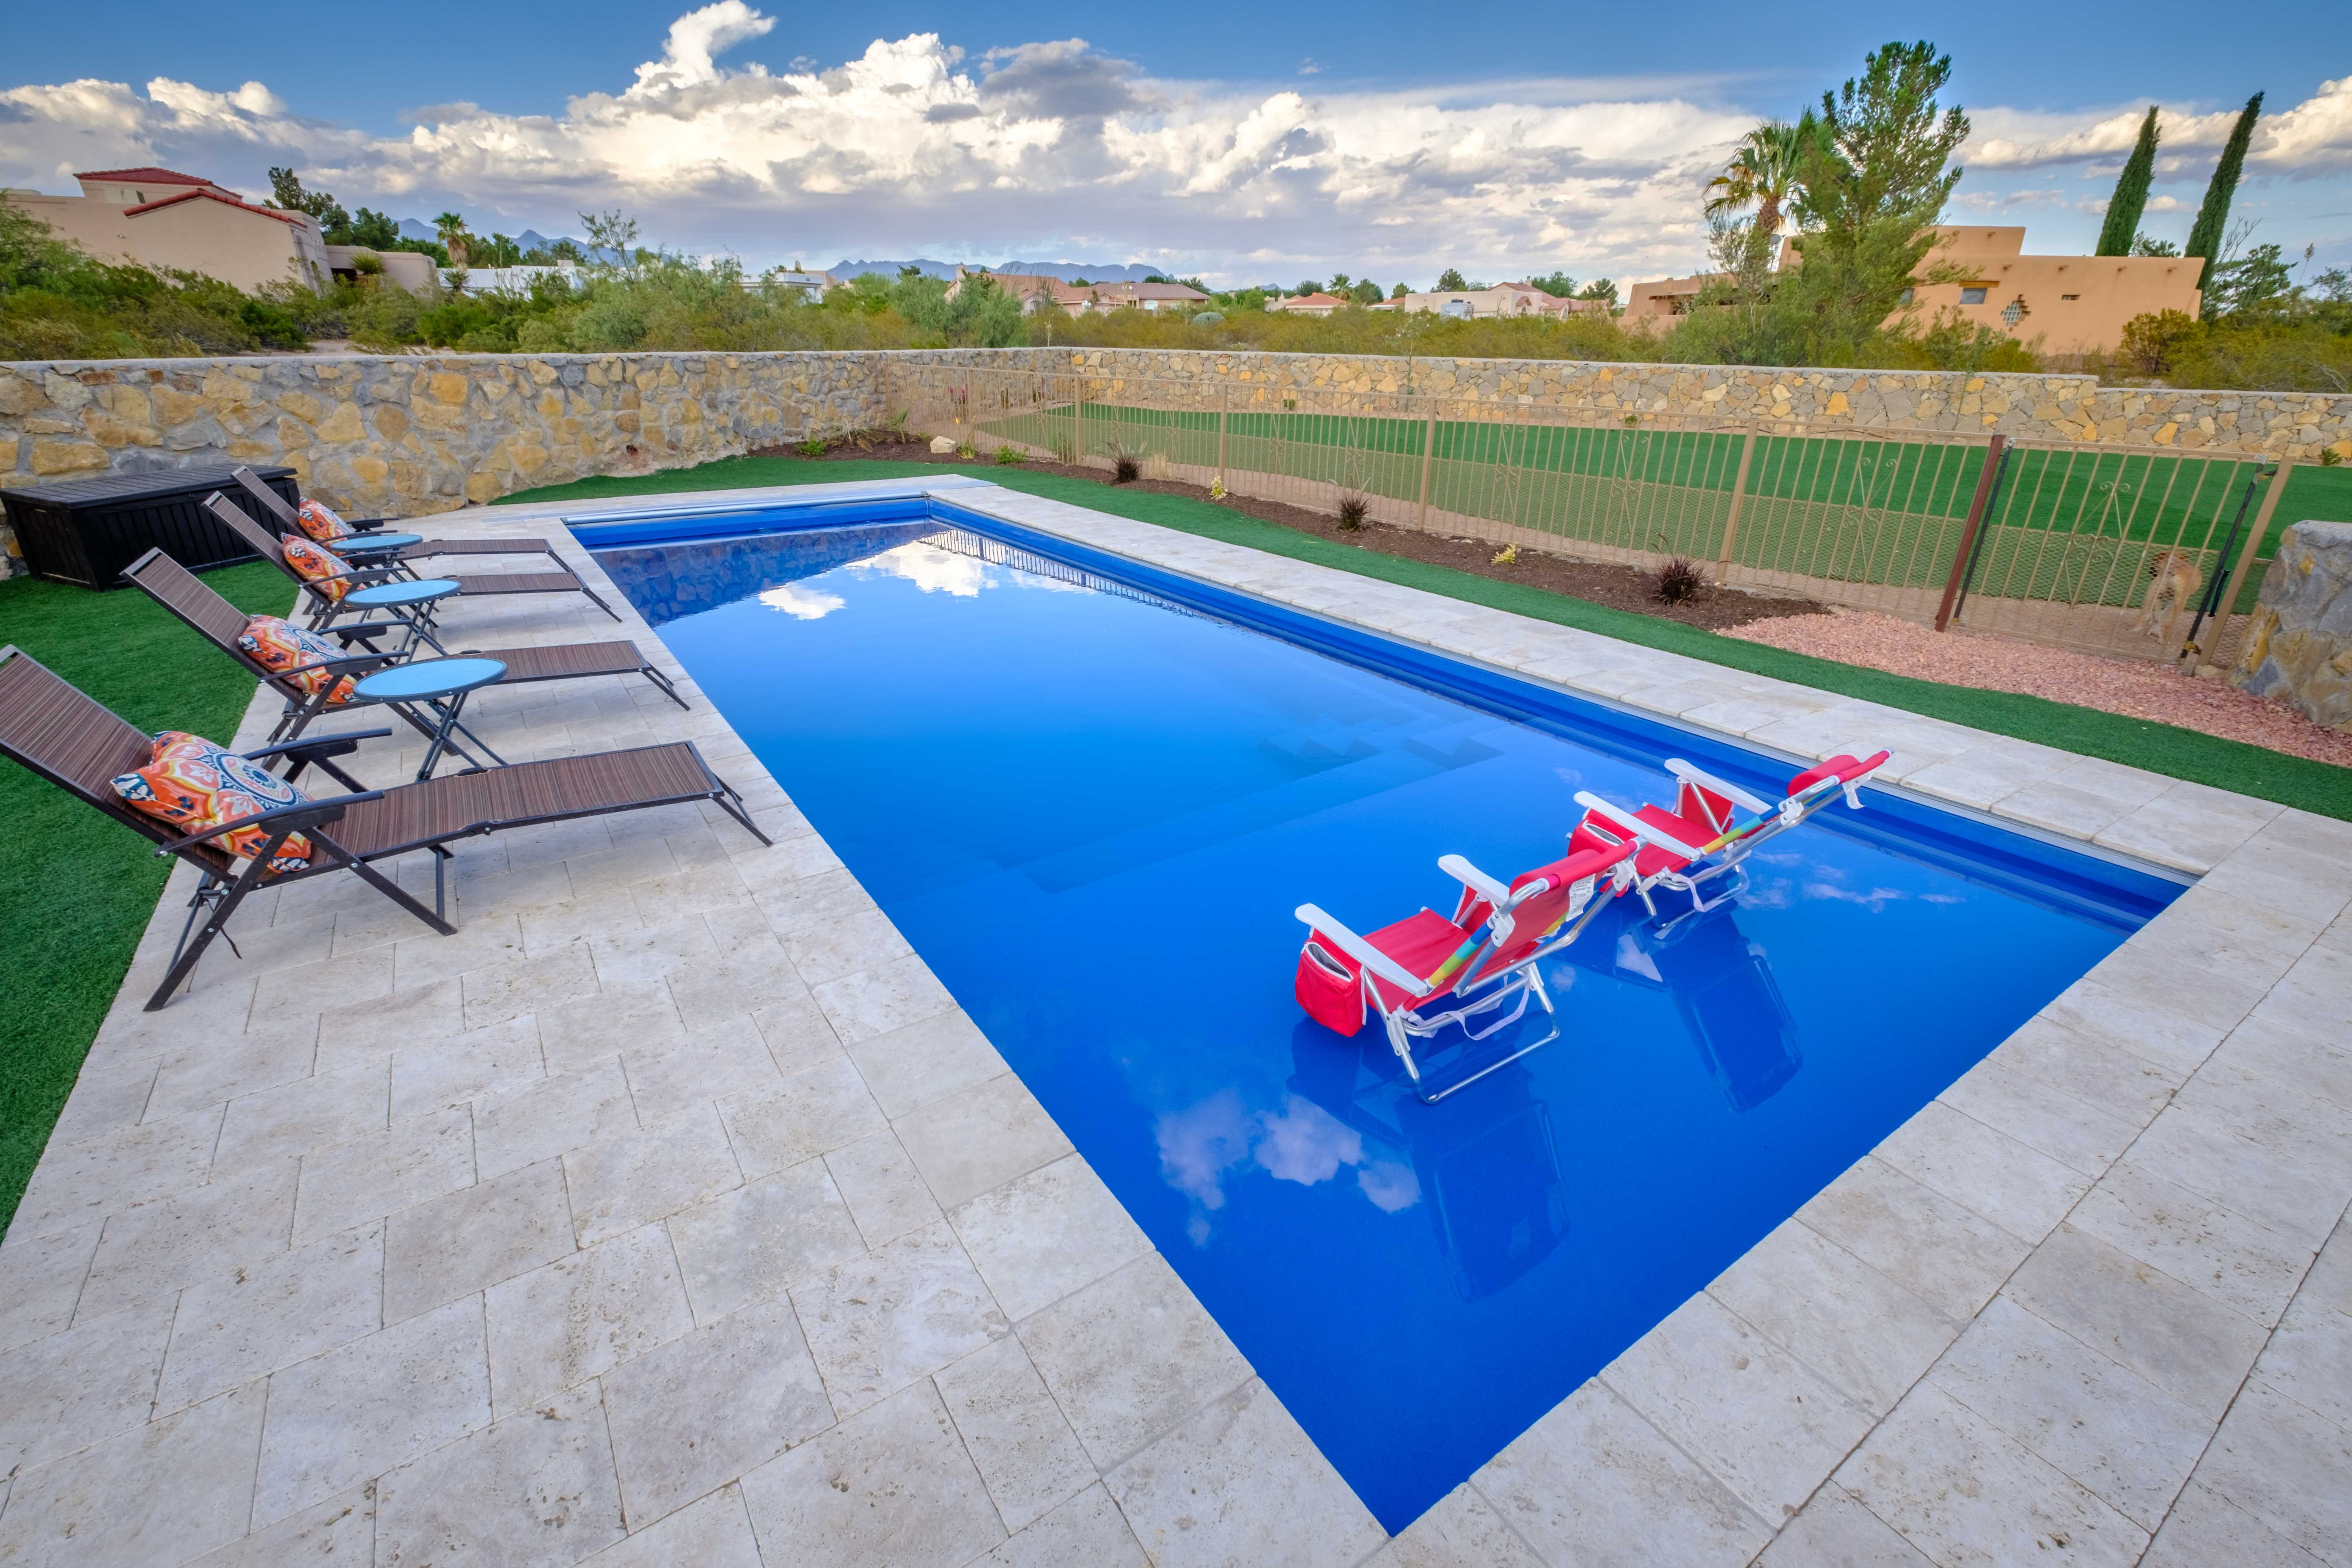 Happiness Is Having Your Very Own Imagine Pools Freedom Fiberglass